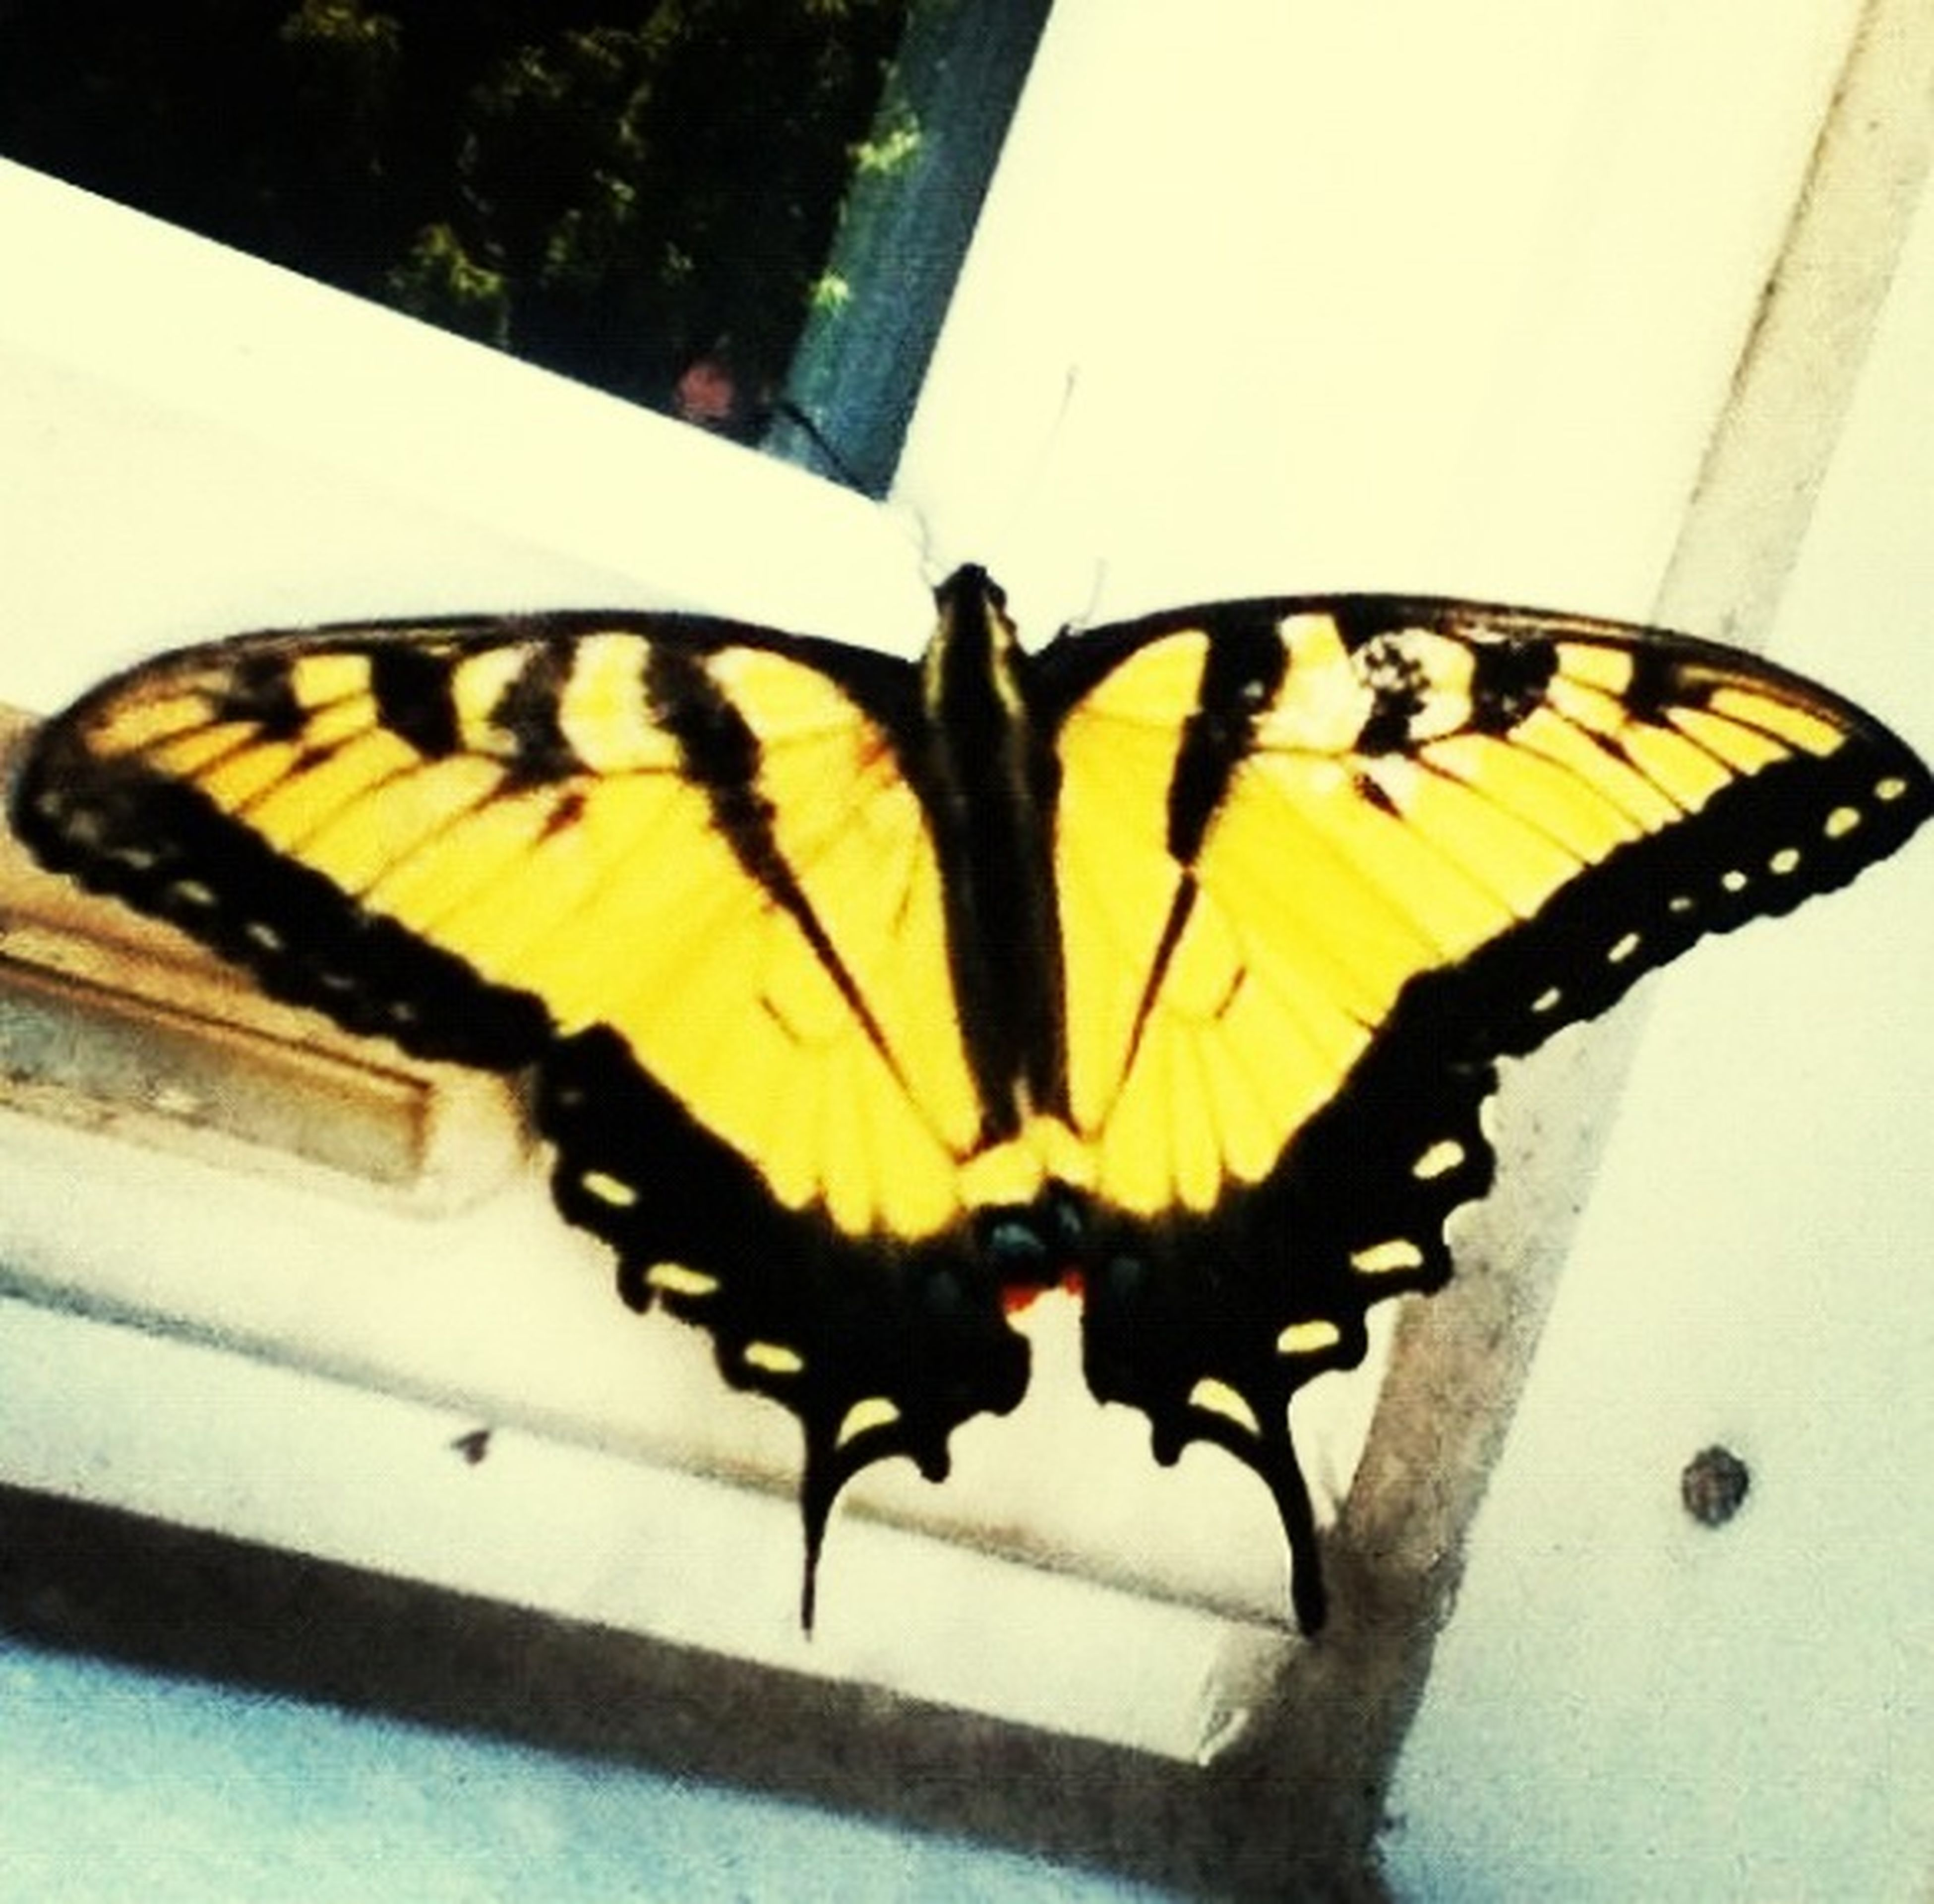 insect, animal themes, animals in the wild, one animal, wildlife, butterfly - insect, yellow, animal markings, butterfly, animal wing, perching, close-up, full length, spread wings, focus on foreground, nature, no people, natural pattern, day, outdoors